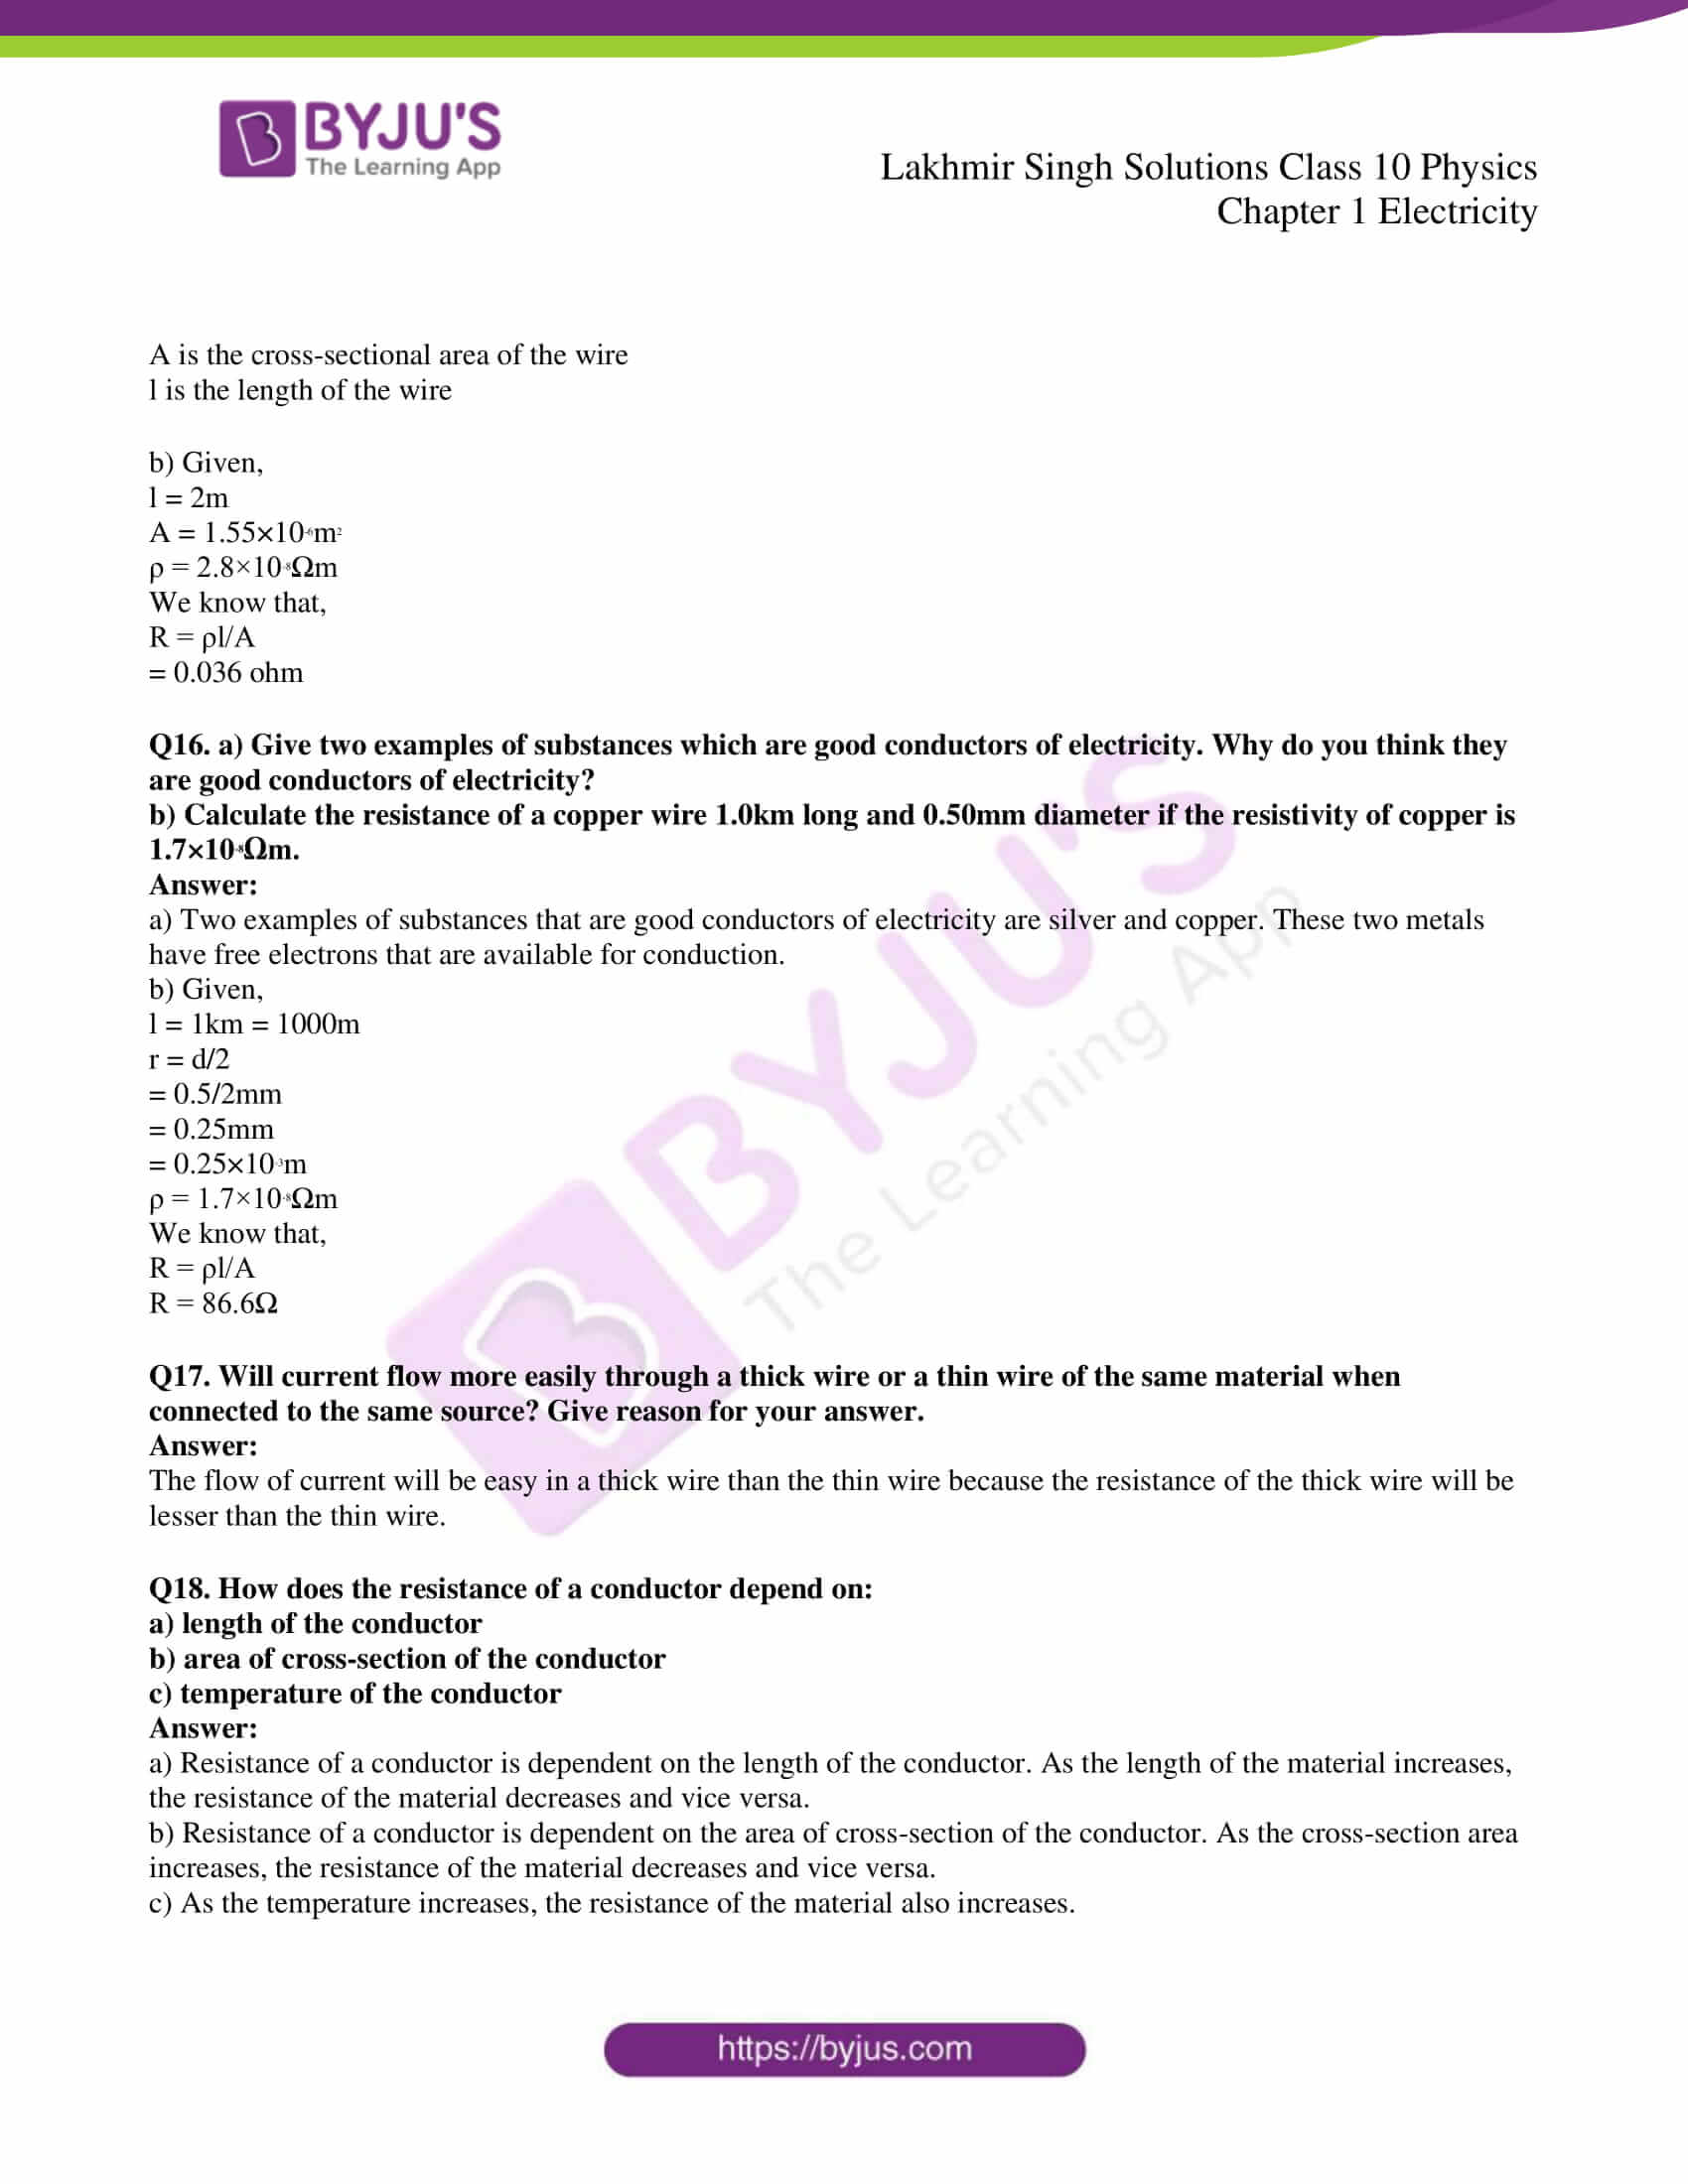 lakhmir singh solutions class 10 physics chapter 1 30